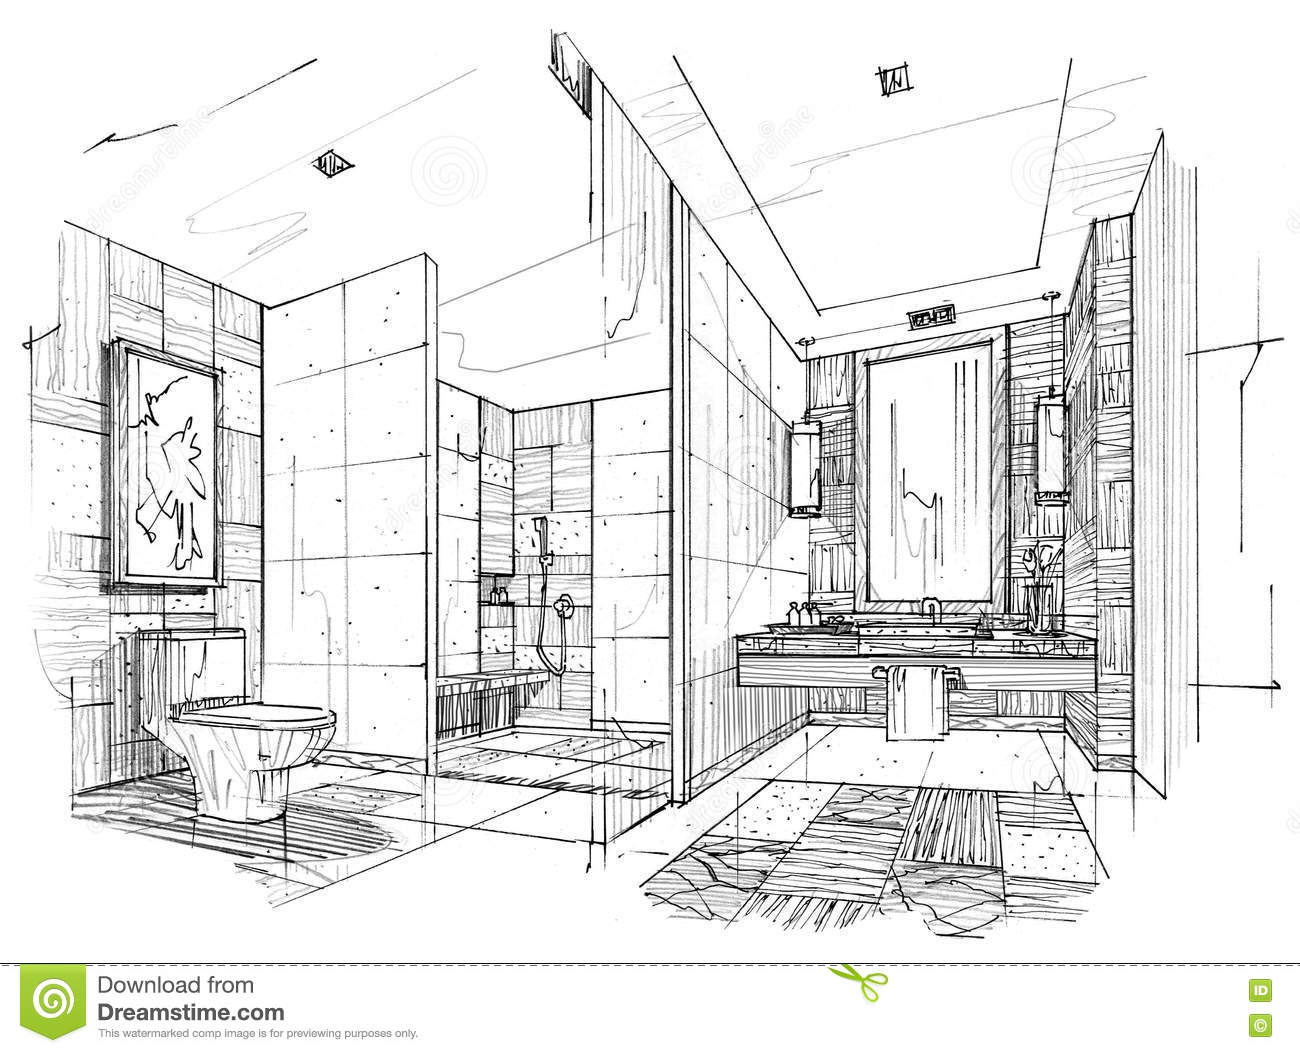 Bathroom drawing design - Sketch Interior Perspective Toilet Bathroom Black And White Interior Design